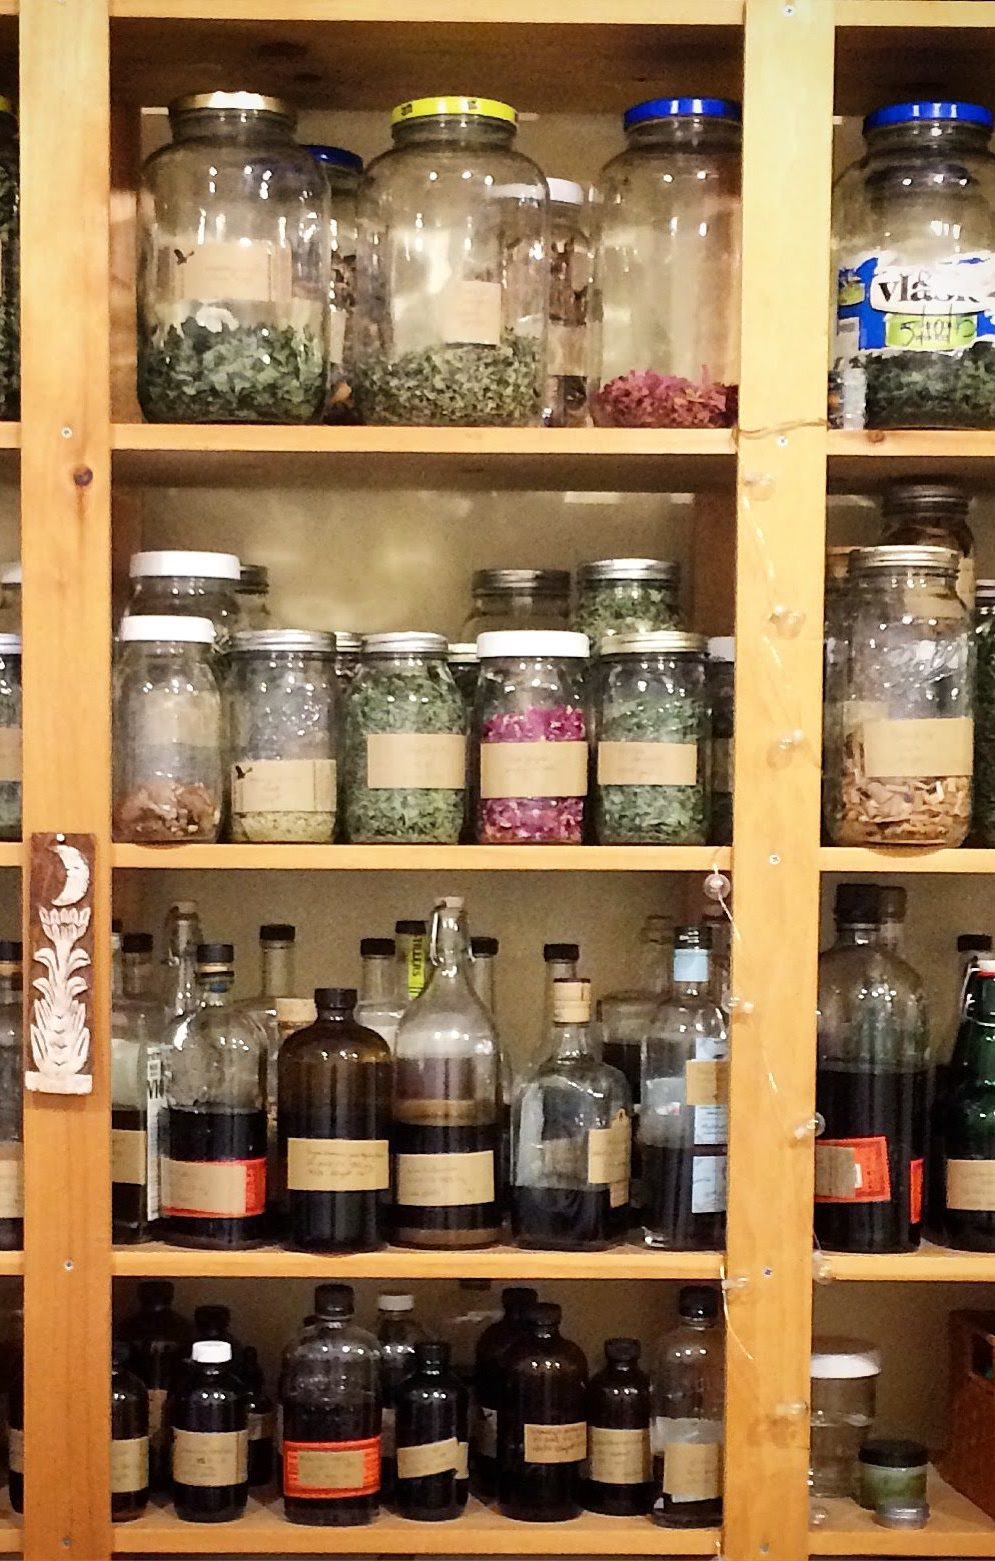 Community Apothecary